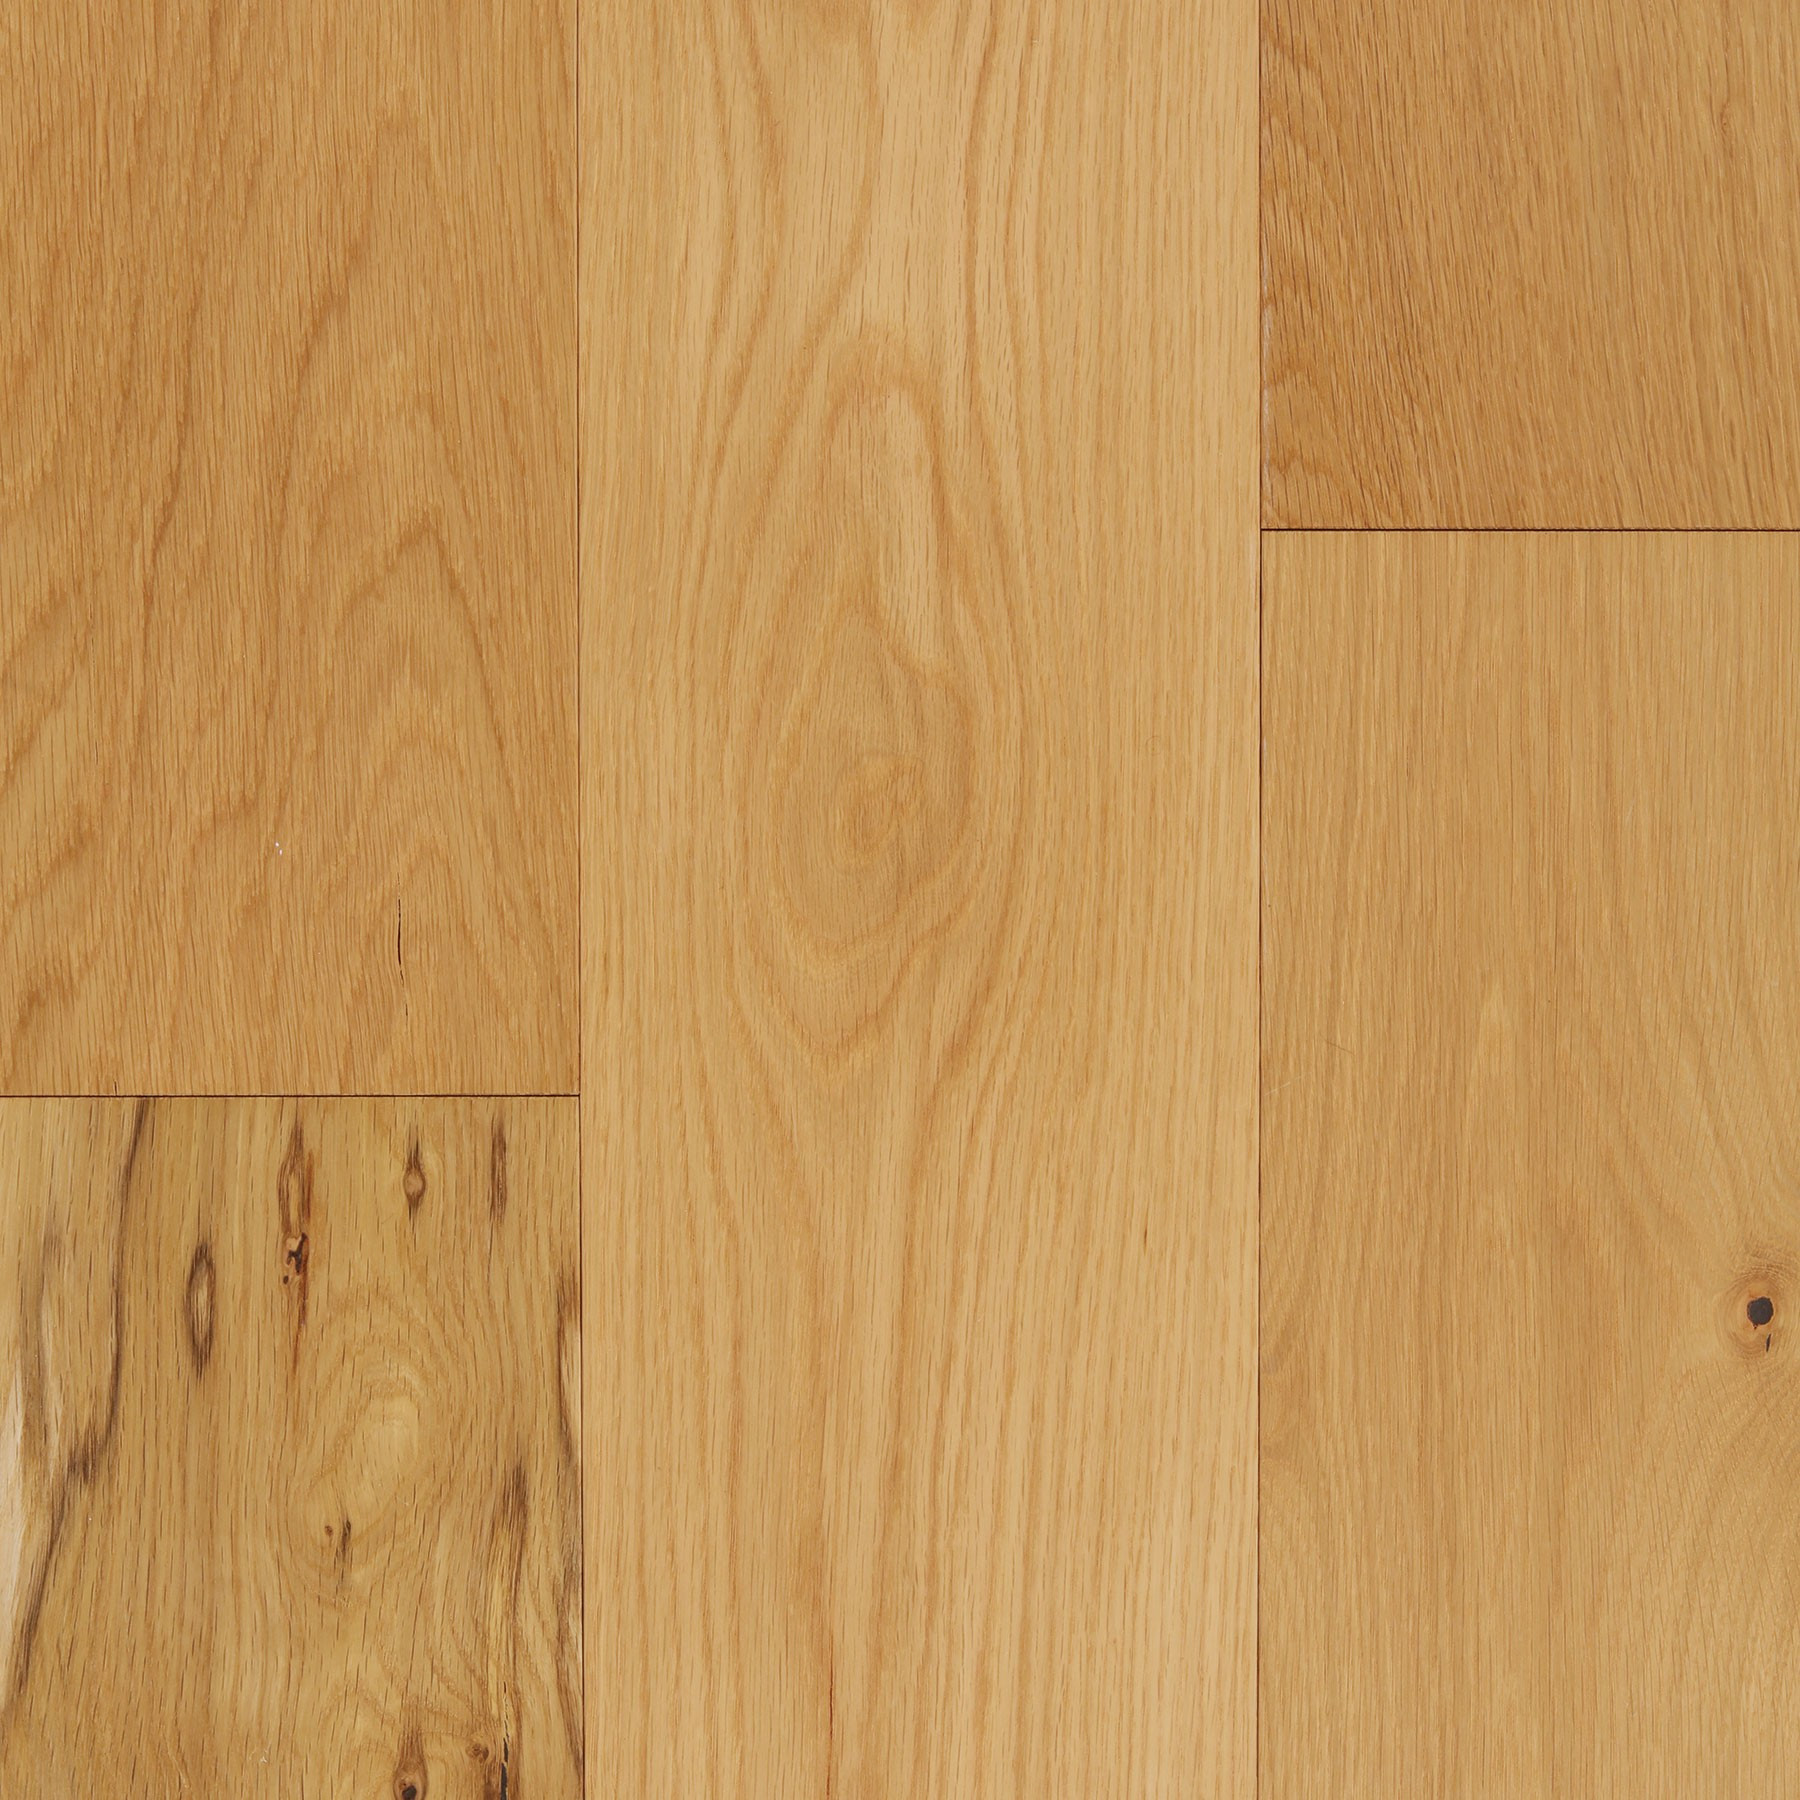 mohawk hardwood floor cleaner reviews of 19 awesome pergo vs hardwood pics dizpos com with pergo vs hardwood awesome oiled domestic barley etx surfaces gallery of 19 awesome pergo vs